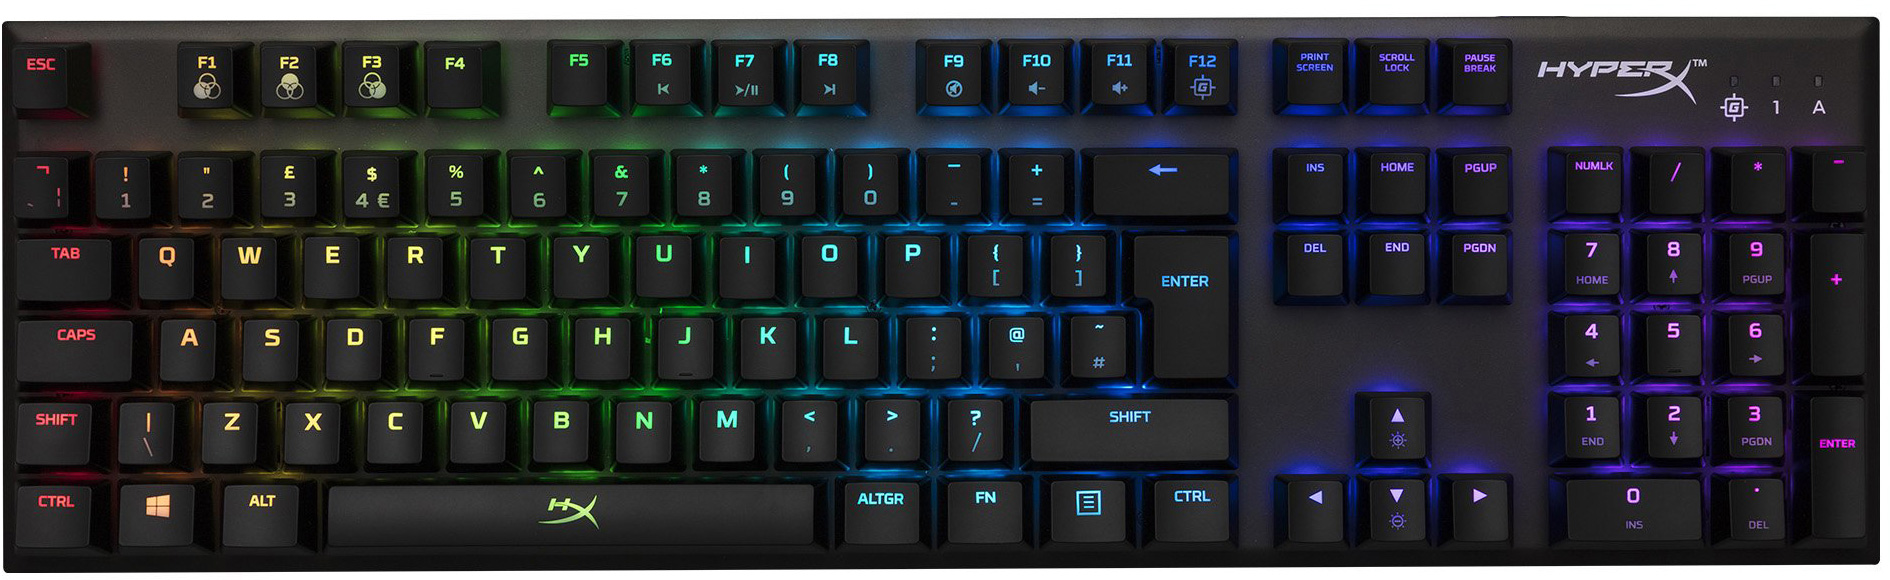 ef864c51f7a The layout is also completely standard, with ISO (UK, Europe) and ANSI (US,  China) variants available. That means you can pick up after-market keycap  sets ...